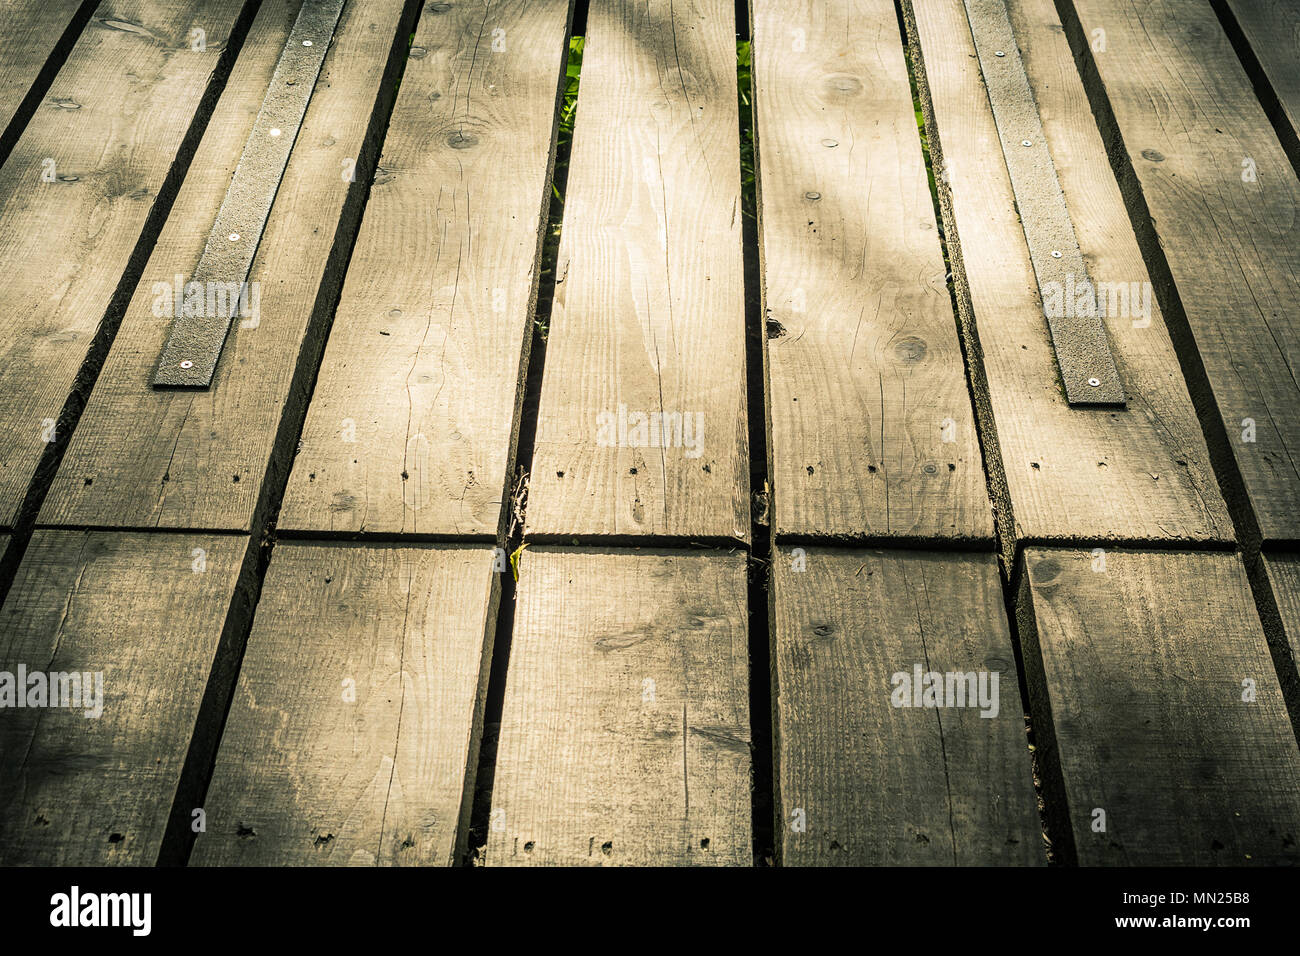 Old, wooden planks board, background - Stock Image